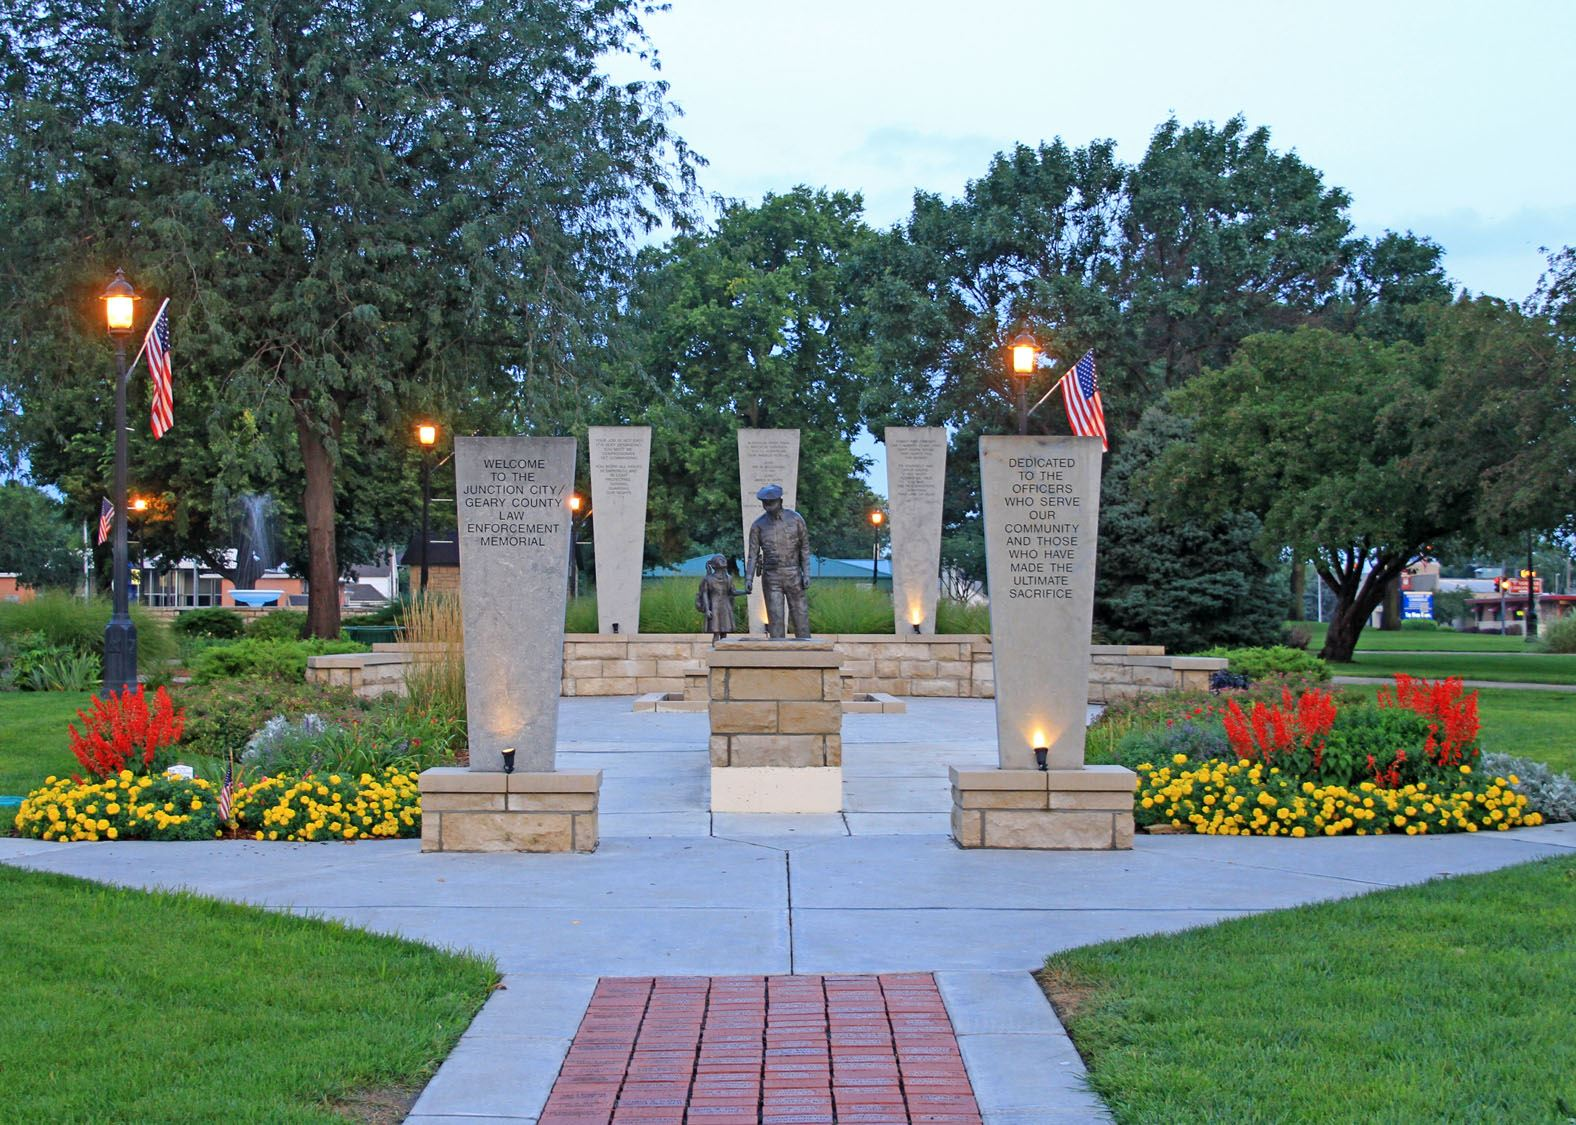 A memorial garden with sculptures